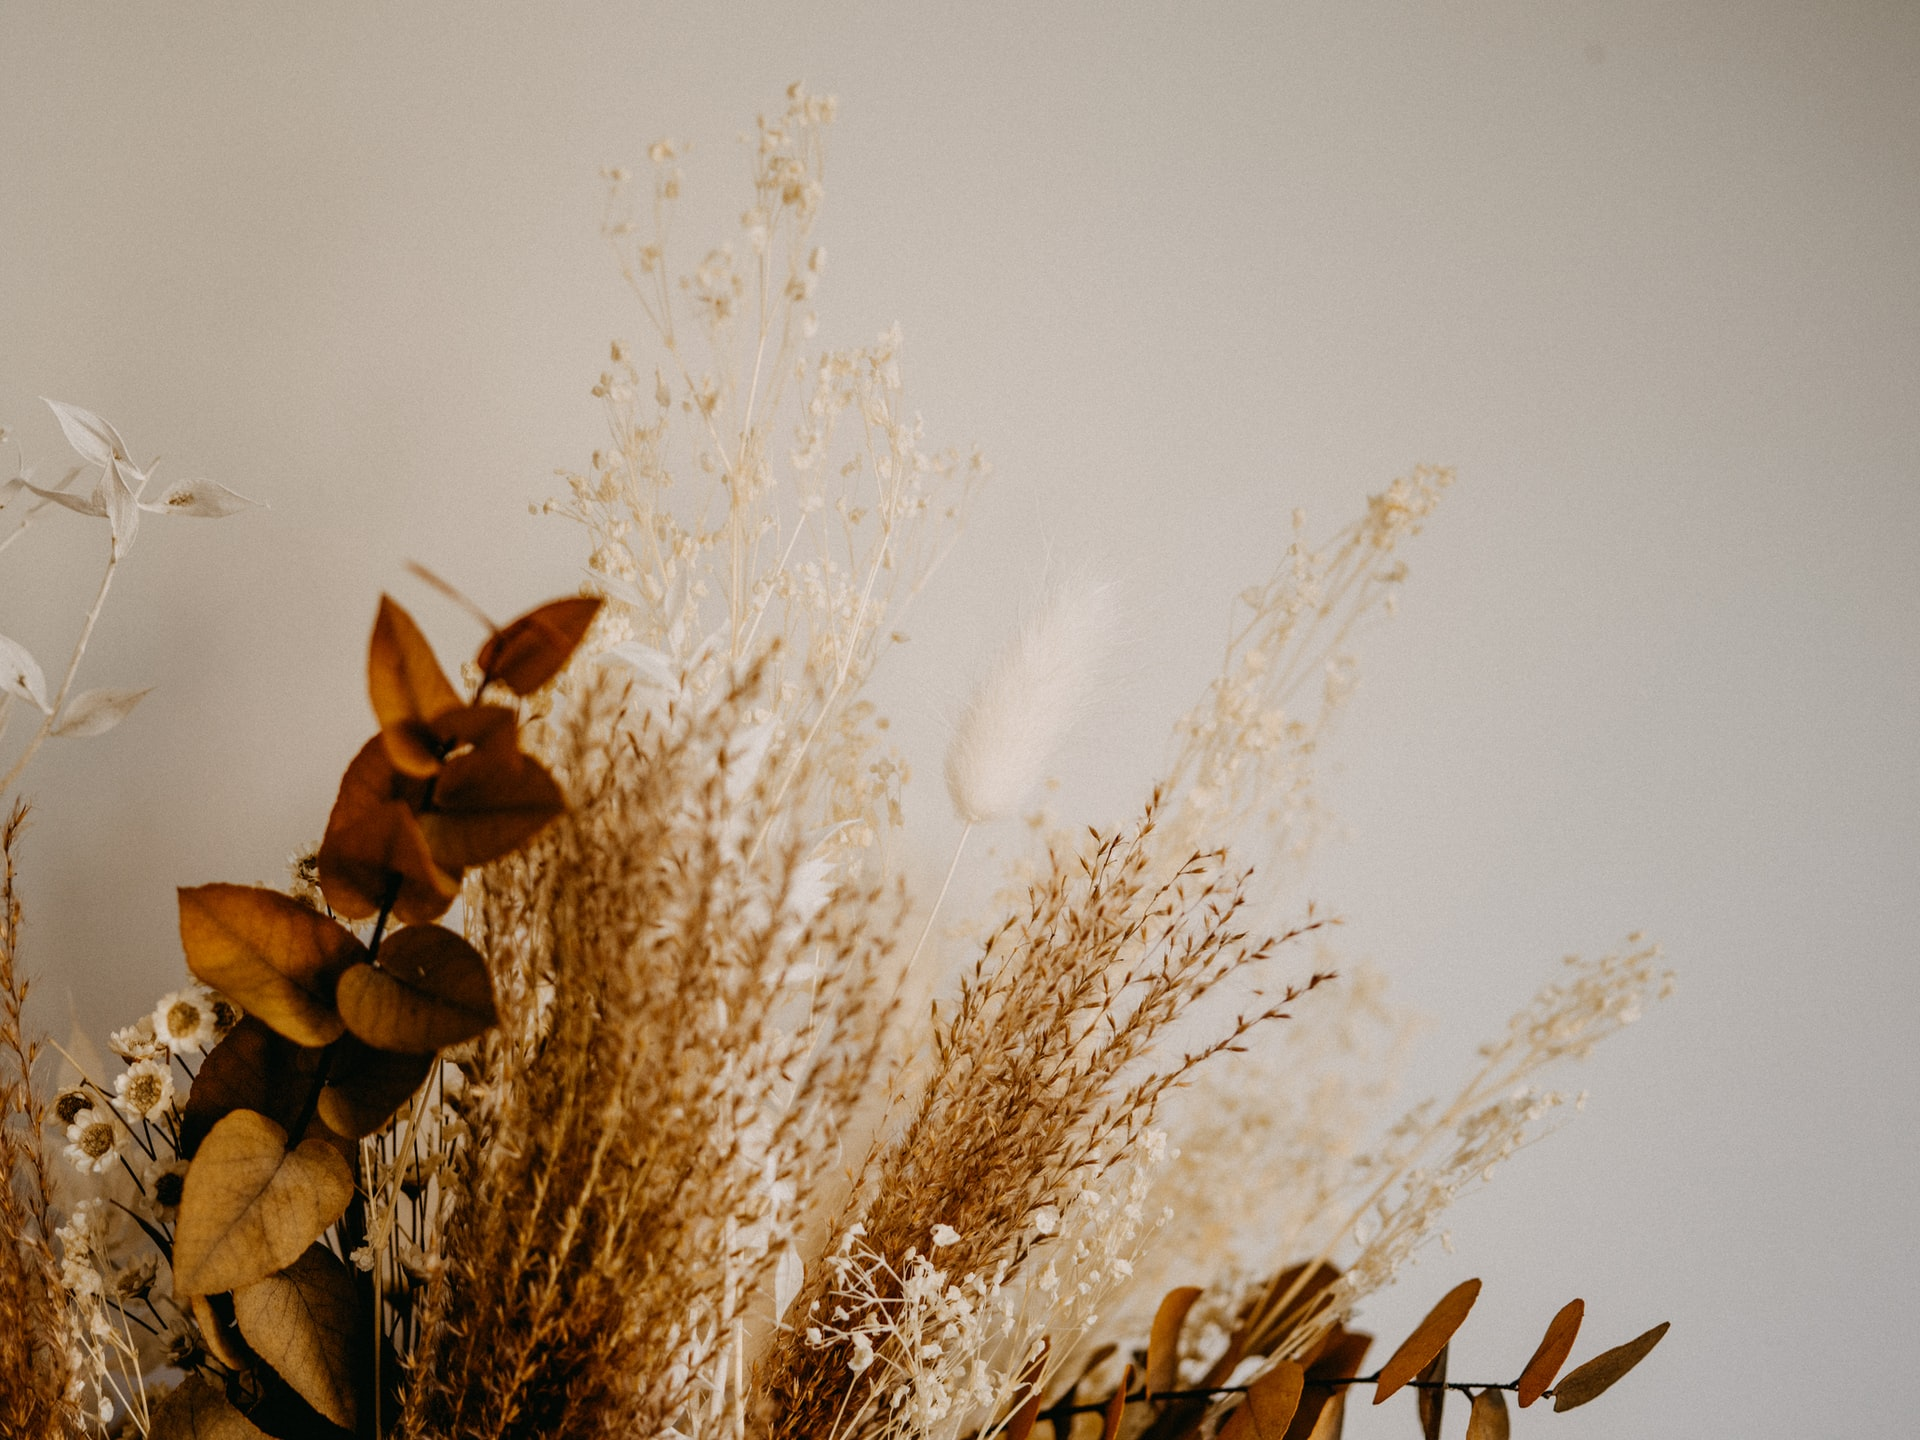 Dried autumn flowers in shades of brown and orange.